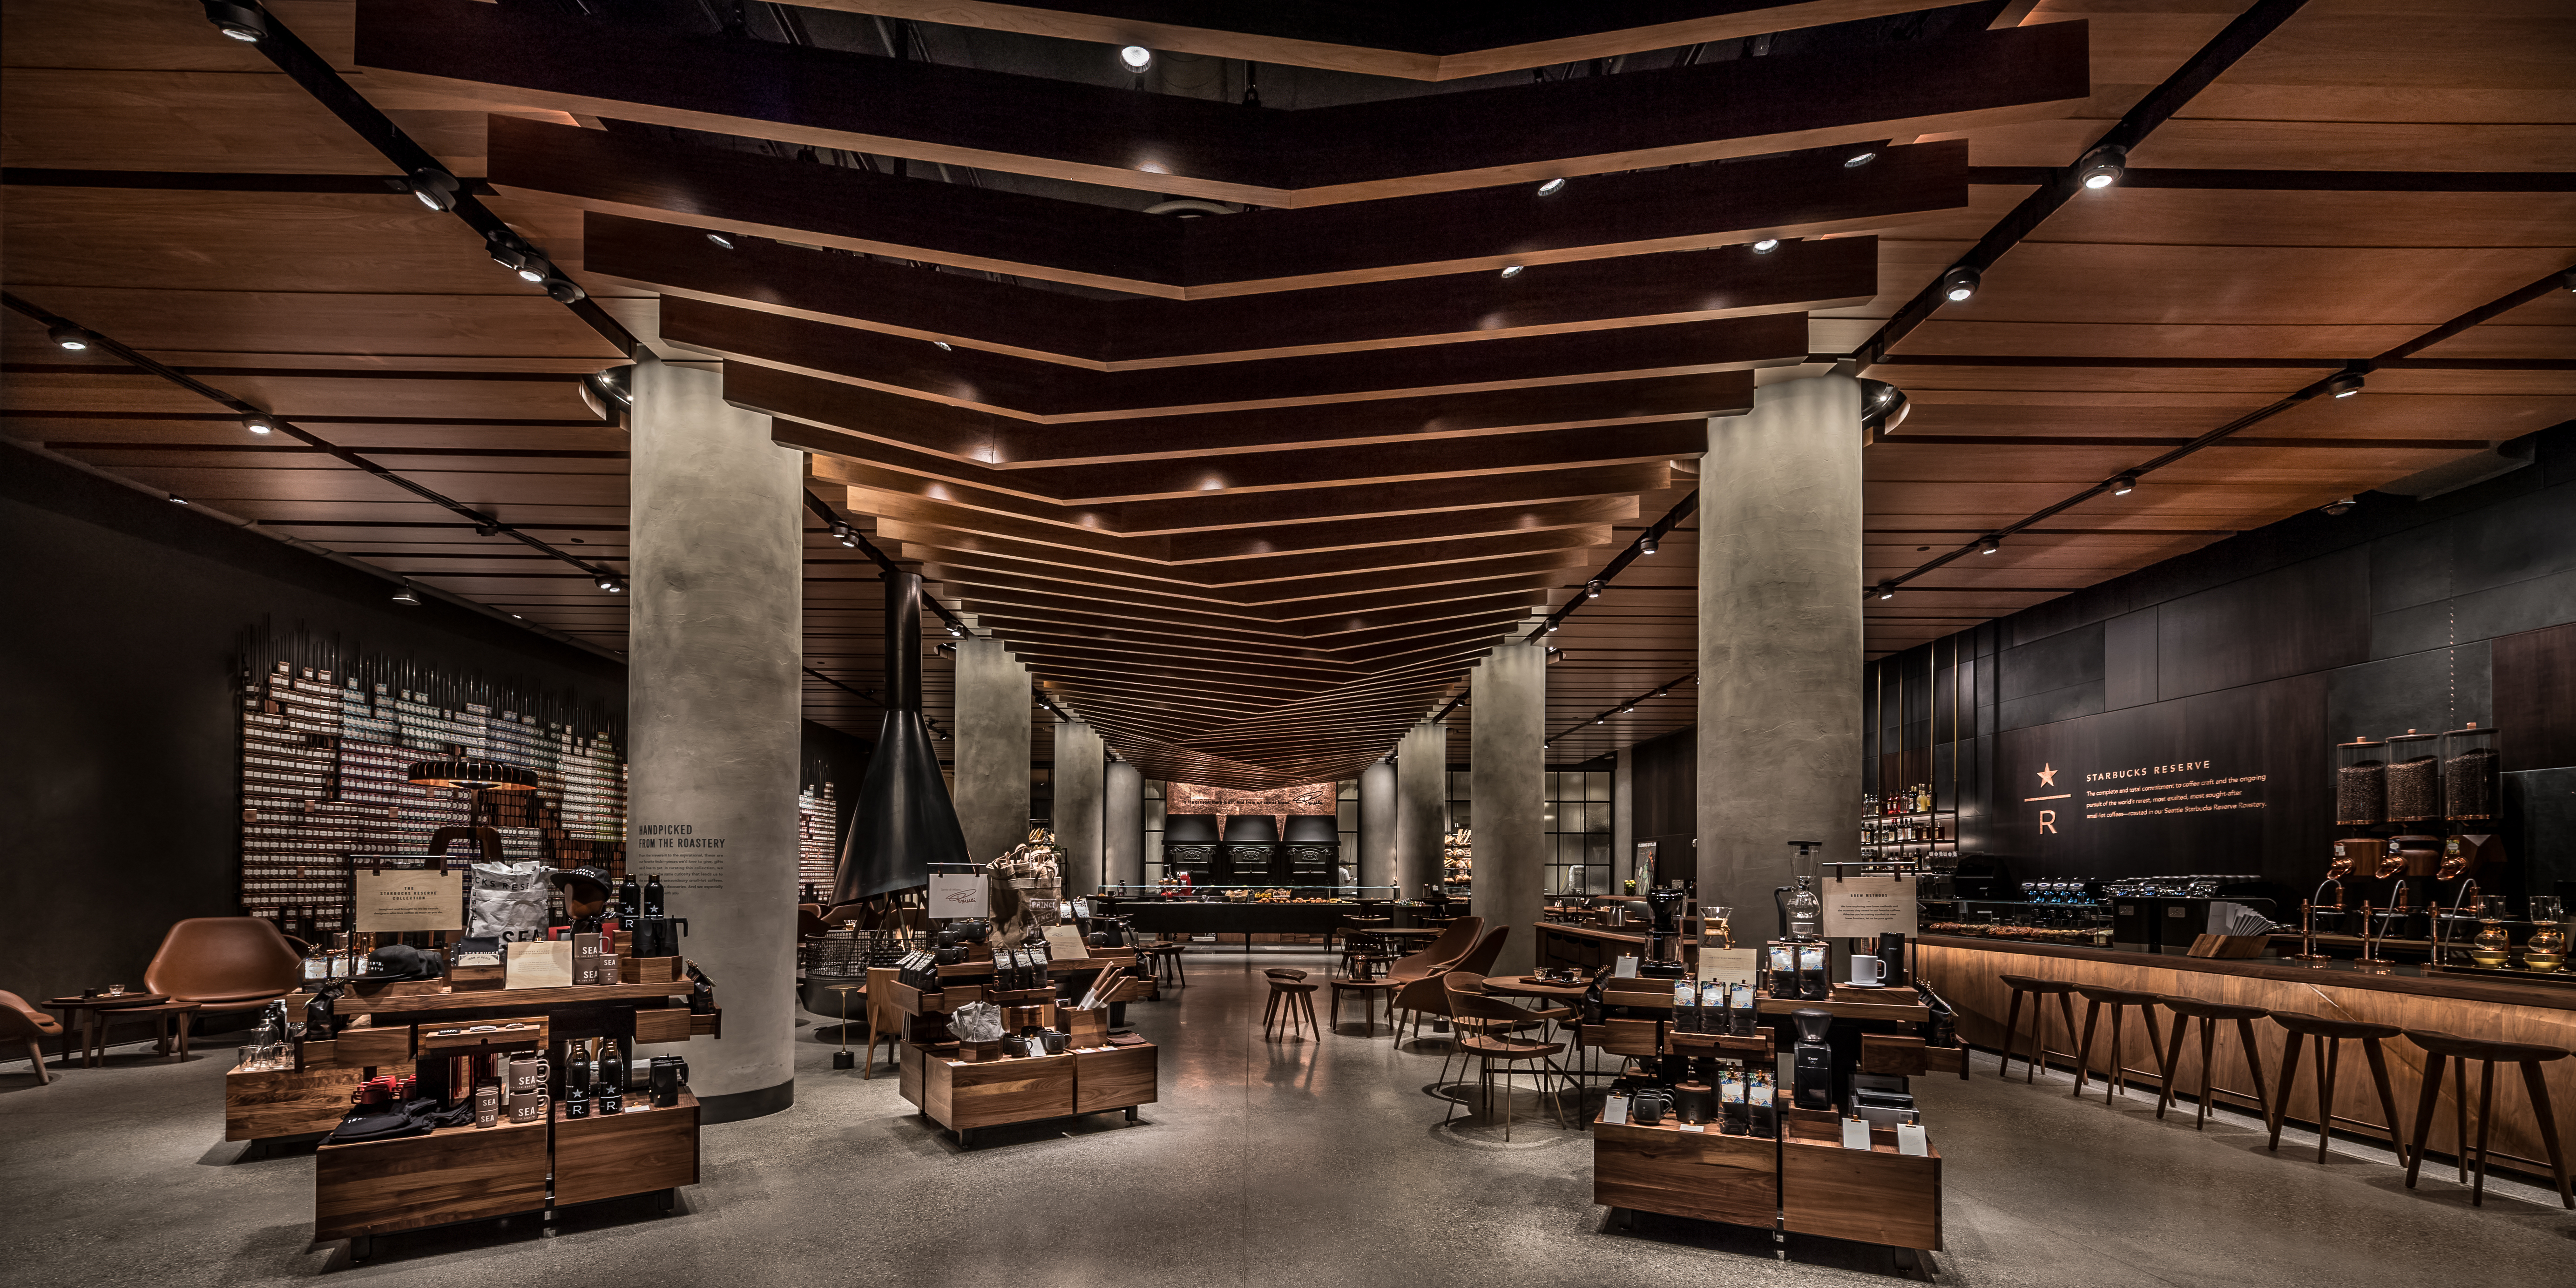 Starbucks First Reserve Store Opens with Italian Princi Bakery ...